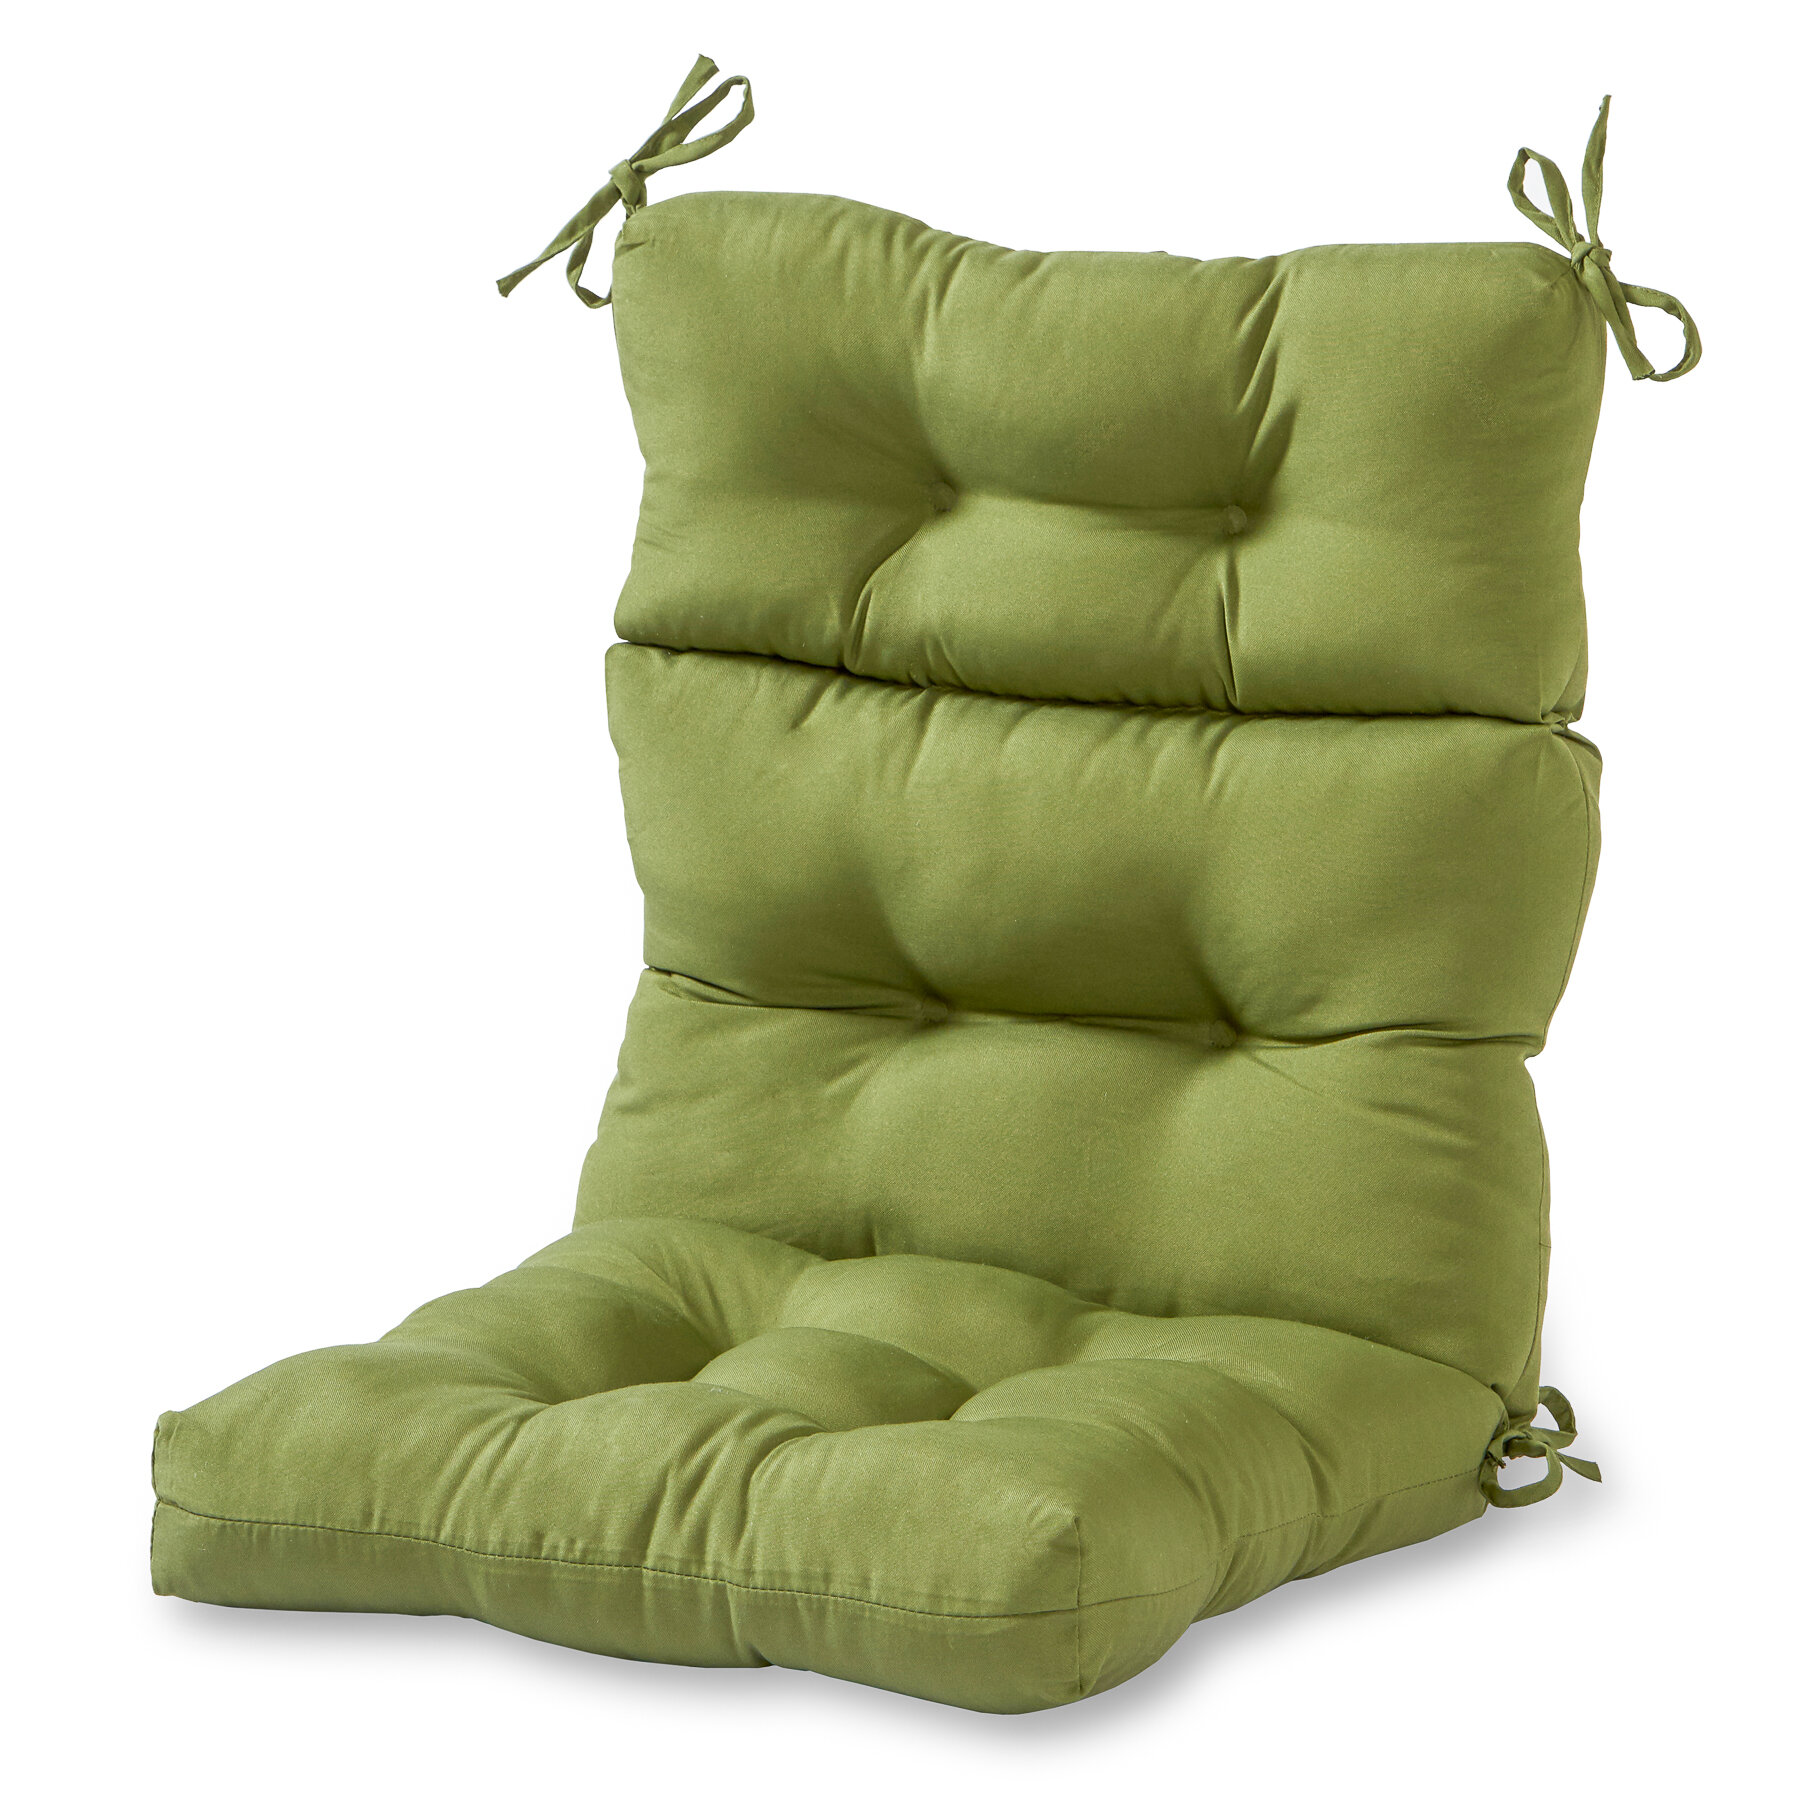 oliver shipping christopher baishi toscana garden green armed with chaise of wicker free cushioned set lounge chair overstock cushion product today knight home james outdoor